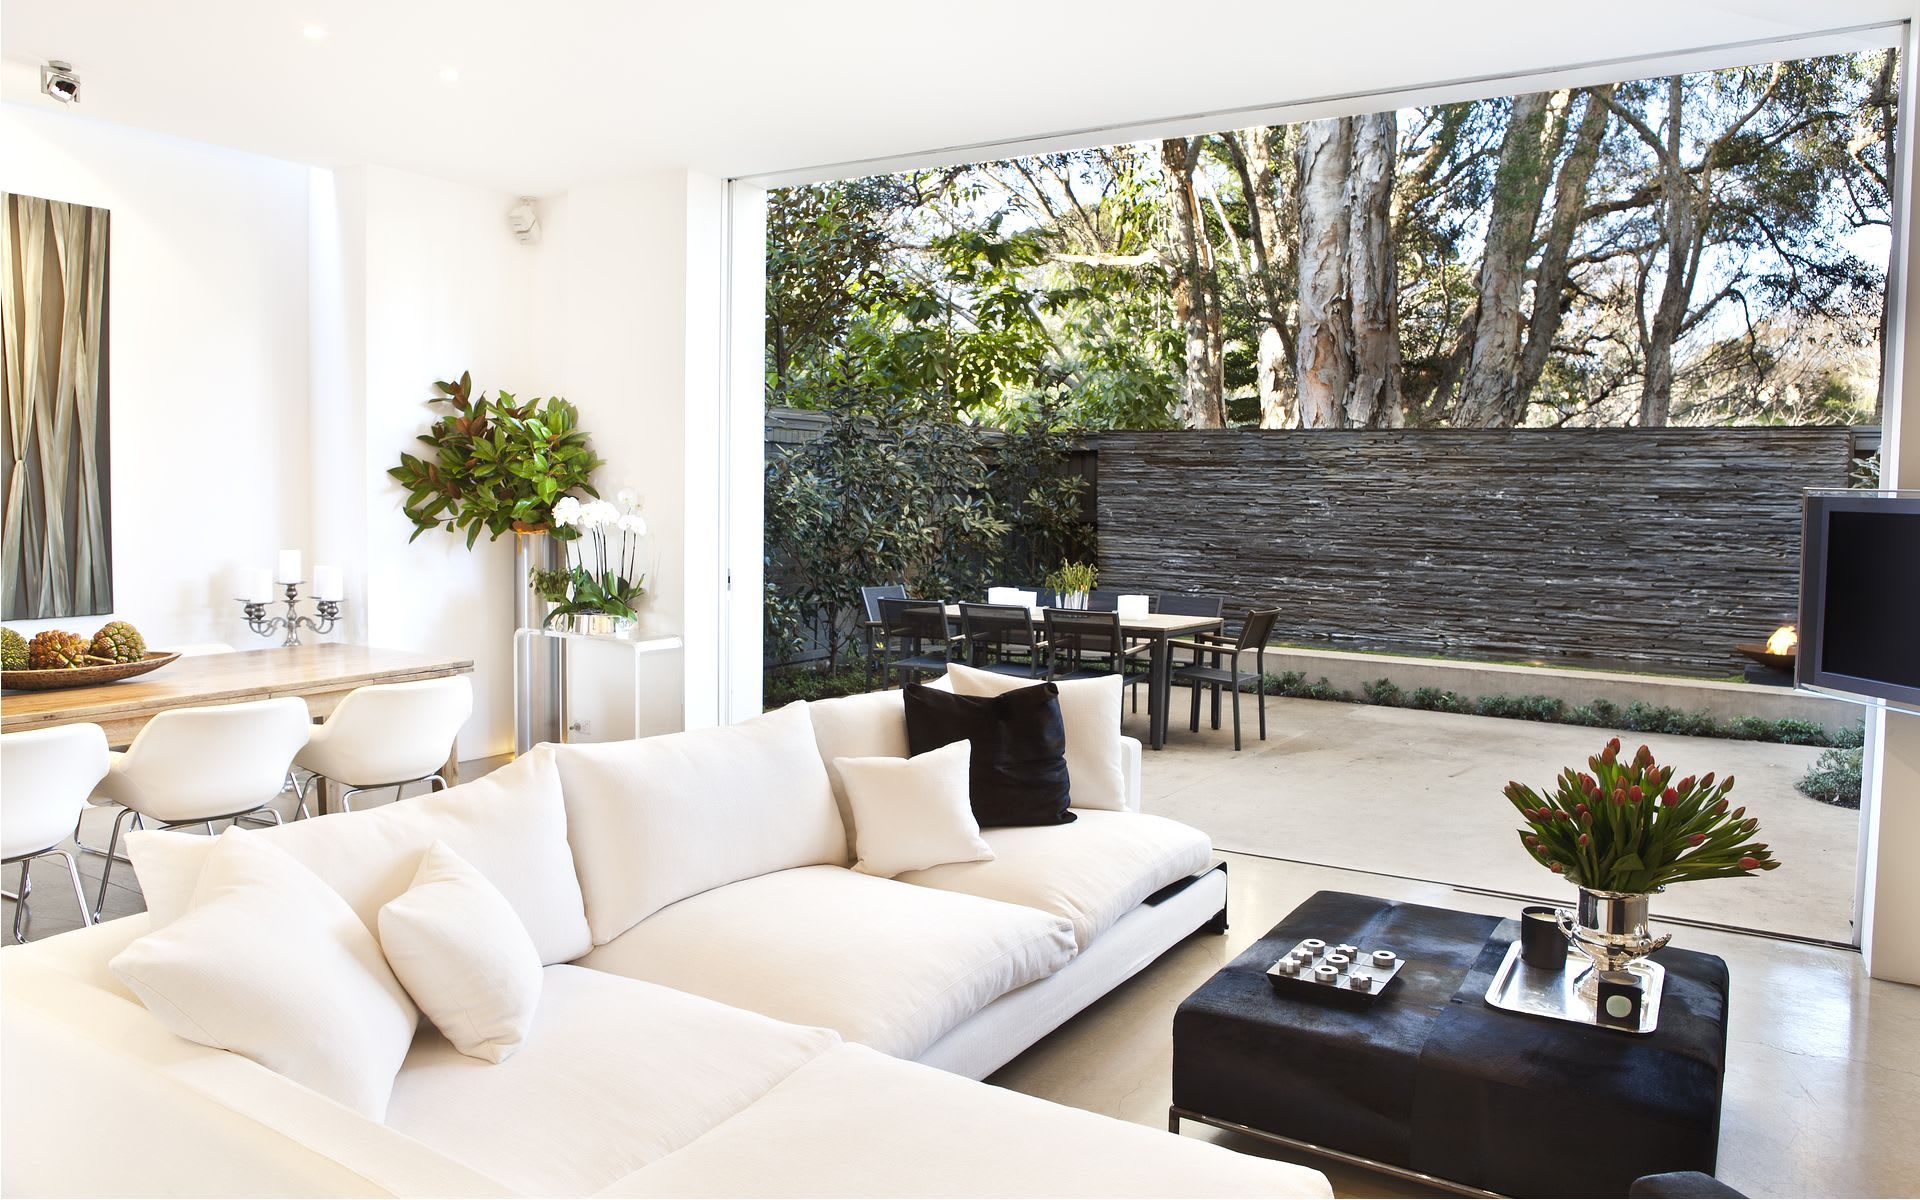 Property Porn: Oh the Glory of $6 Million Indoor-Outdoor Life